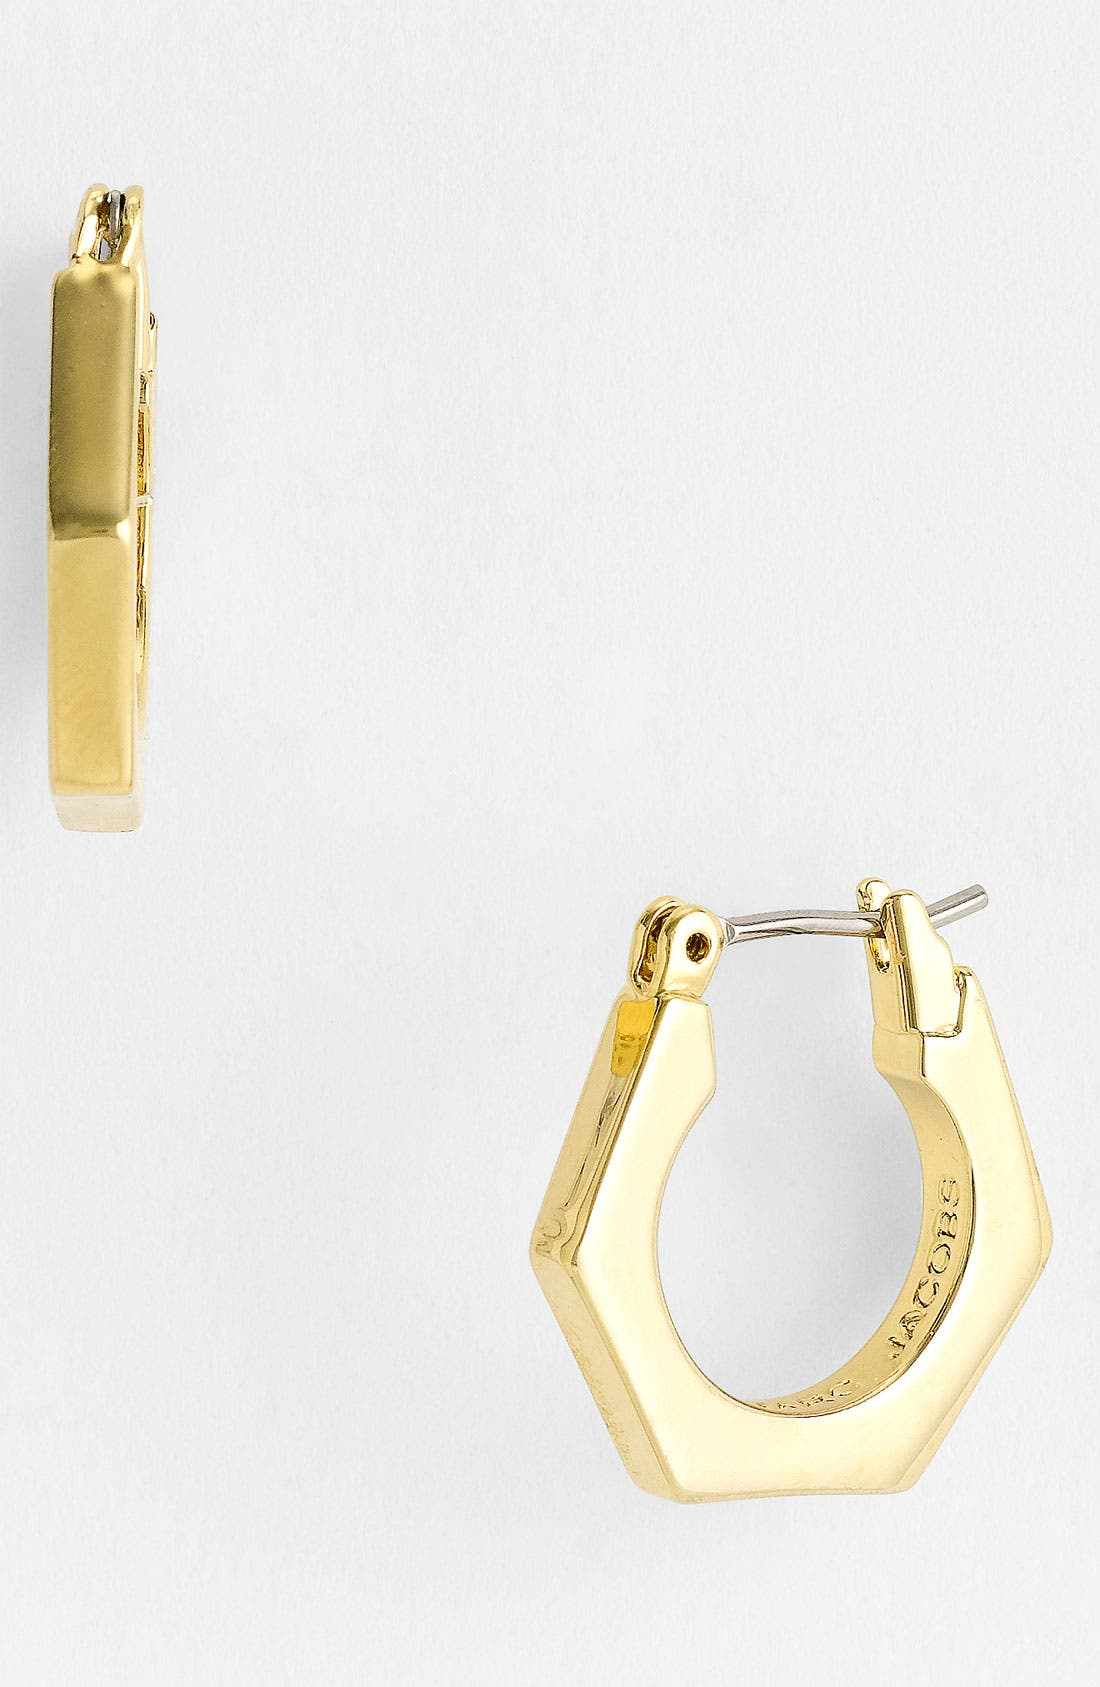 Main Image - MARC BY MARC JACOBS 'Bolts - Slice' Small Geometric Hoop Earrings